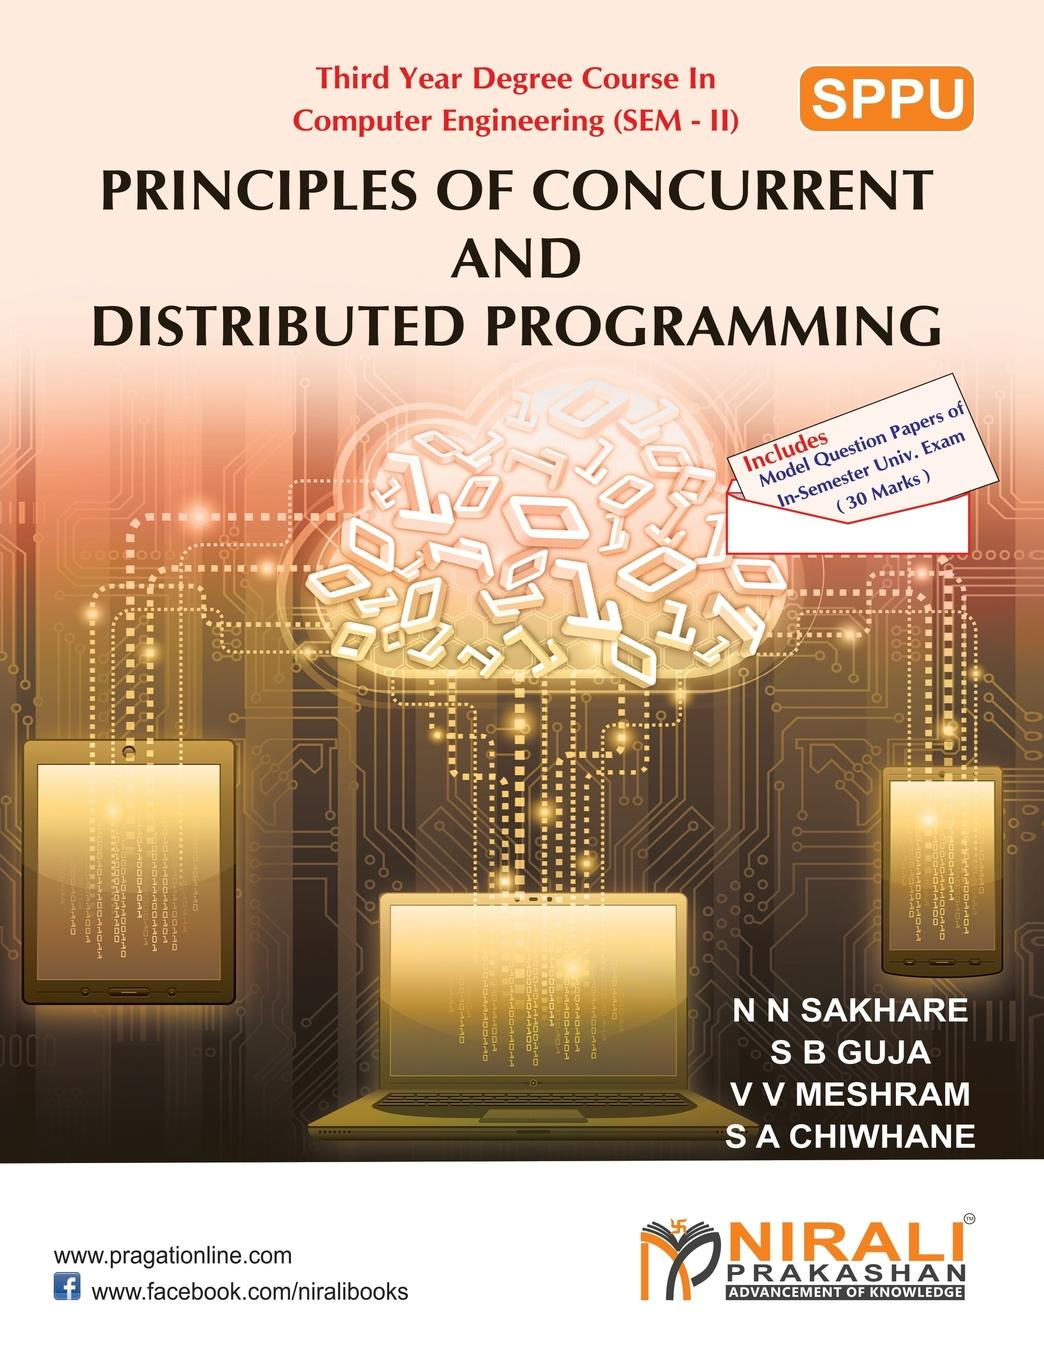 N N SAKHARE, V V MESHRAM MESHRAM, S A CHIWHANE PRINCIPLES OF CONCURRENT AND DISTRIBUTED PROGRAMMING fayez gebali algorithms and parallel computing